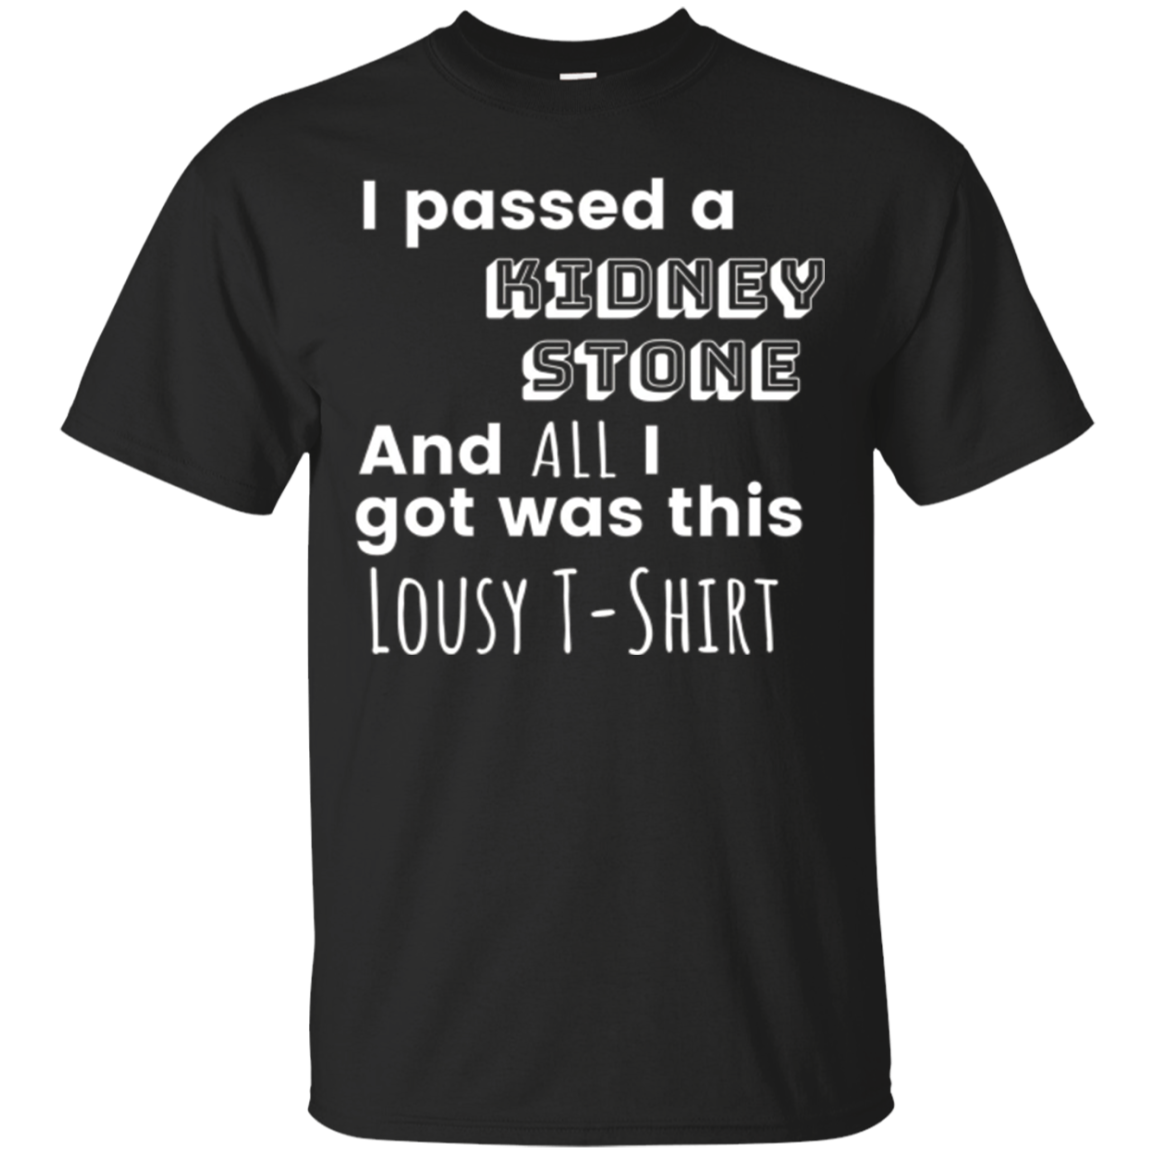 I Passed a Kidney Stone and All I got was this Lousy T-Shirt